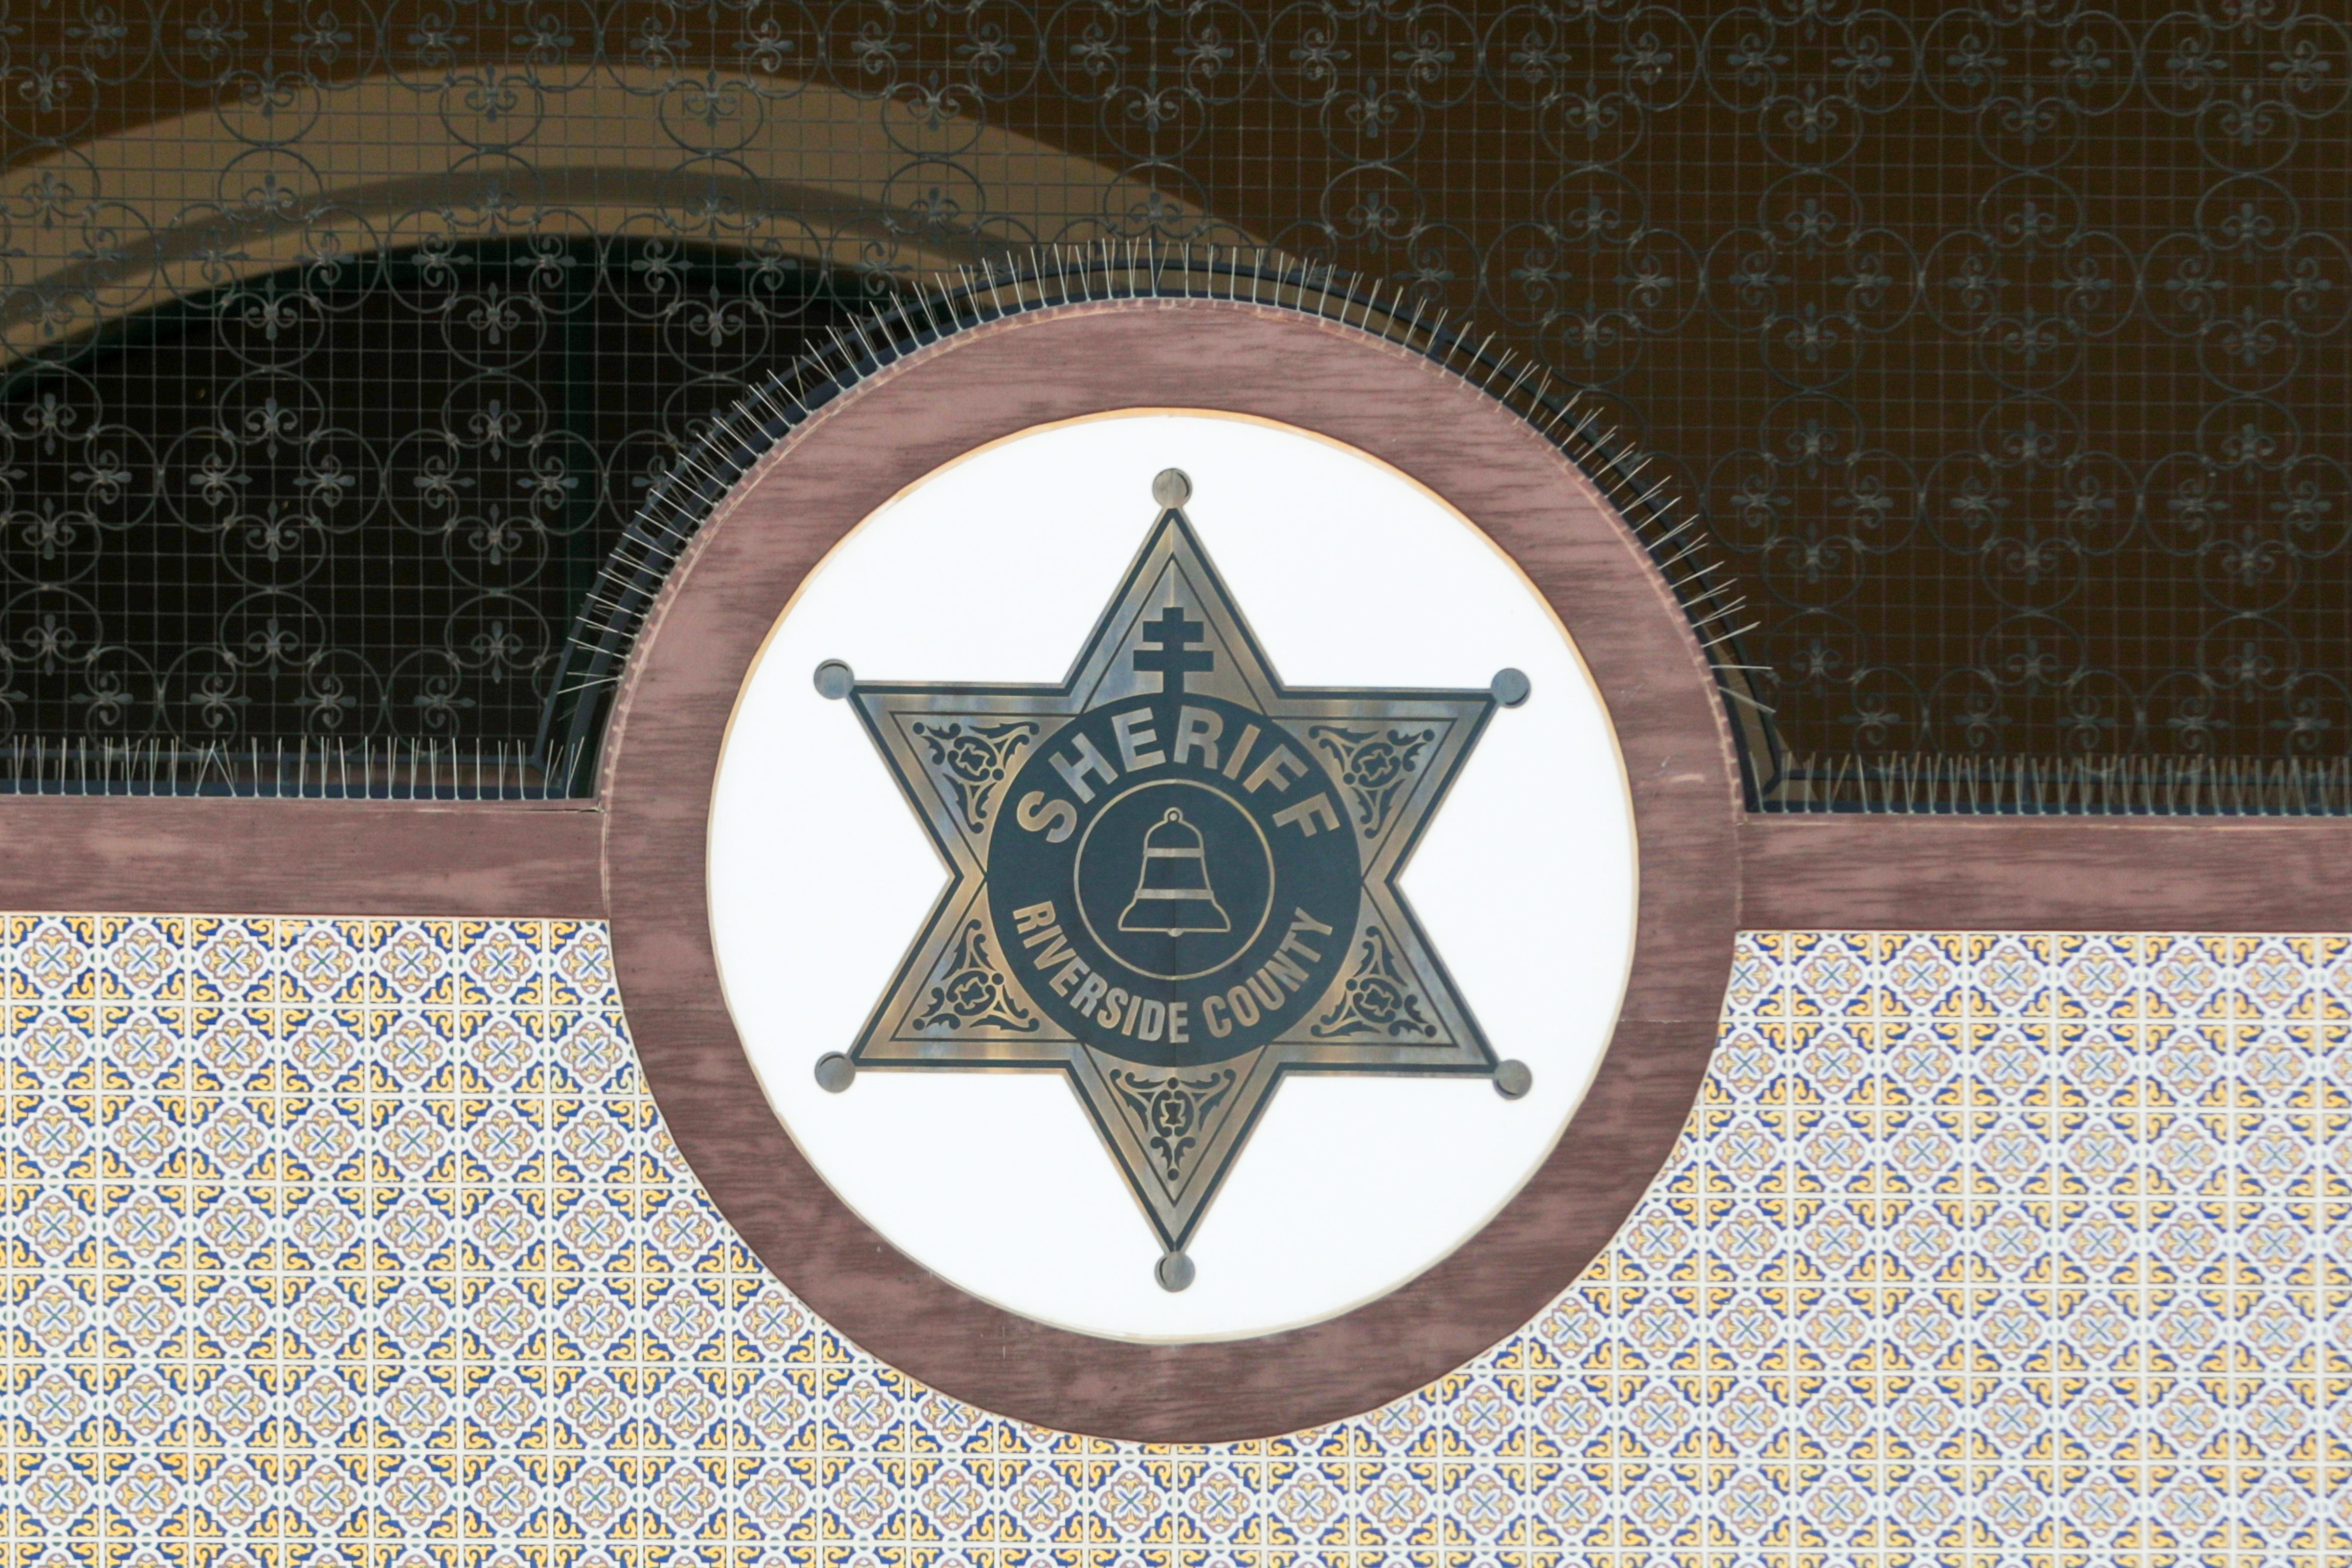 A Riverside County Sheriff's emblem sits on the Thermal Sheriff's Station building at 86625 Airport Blvd. in Thermal.